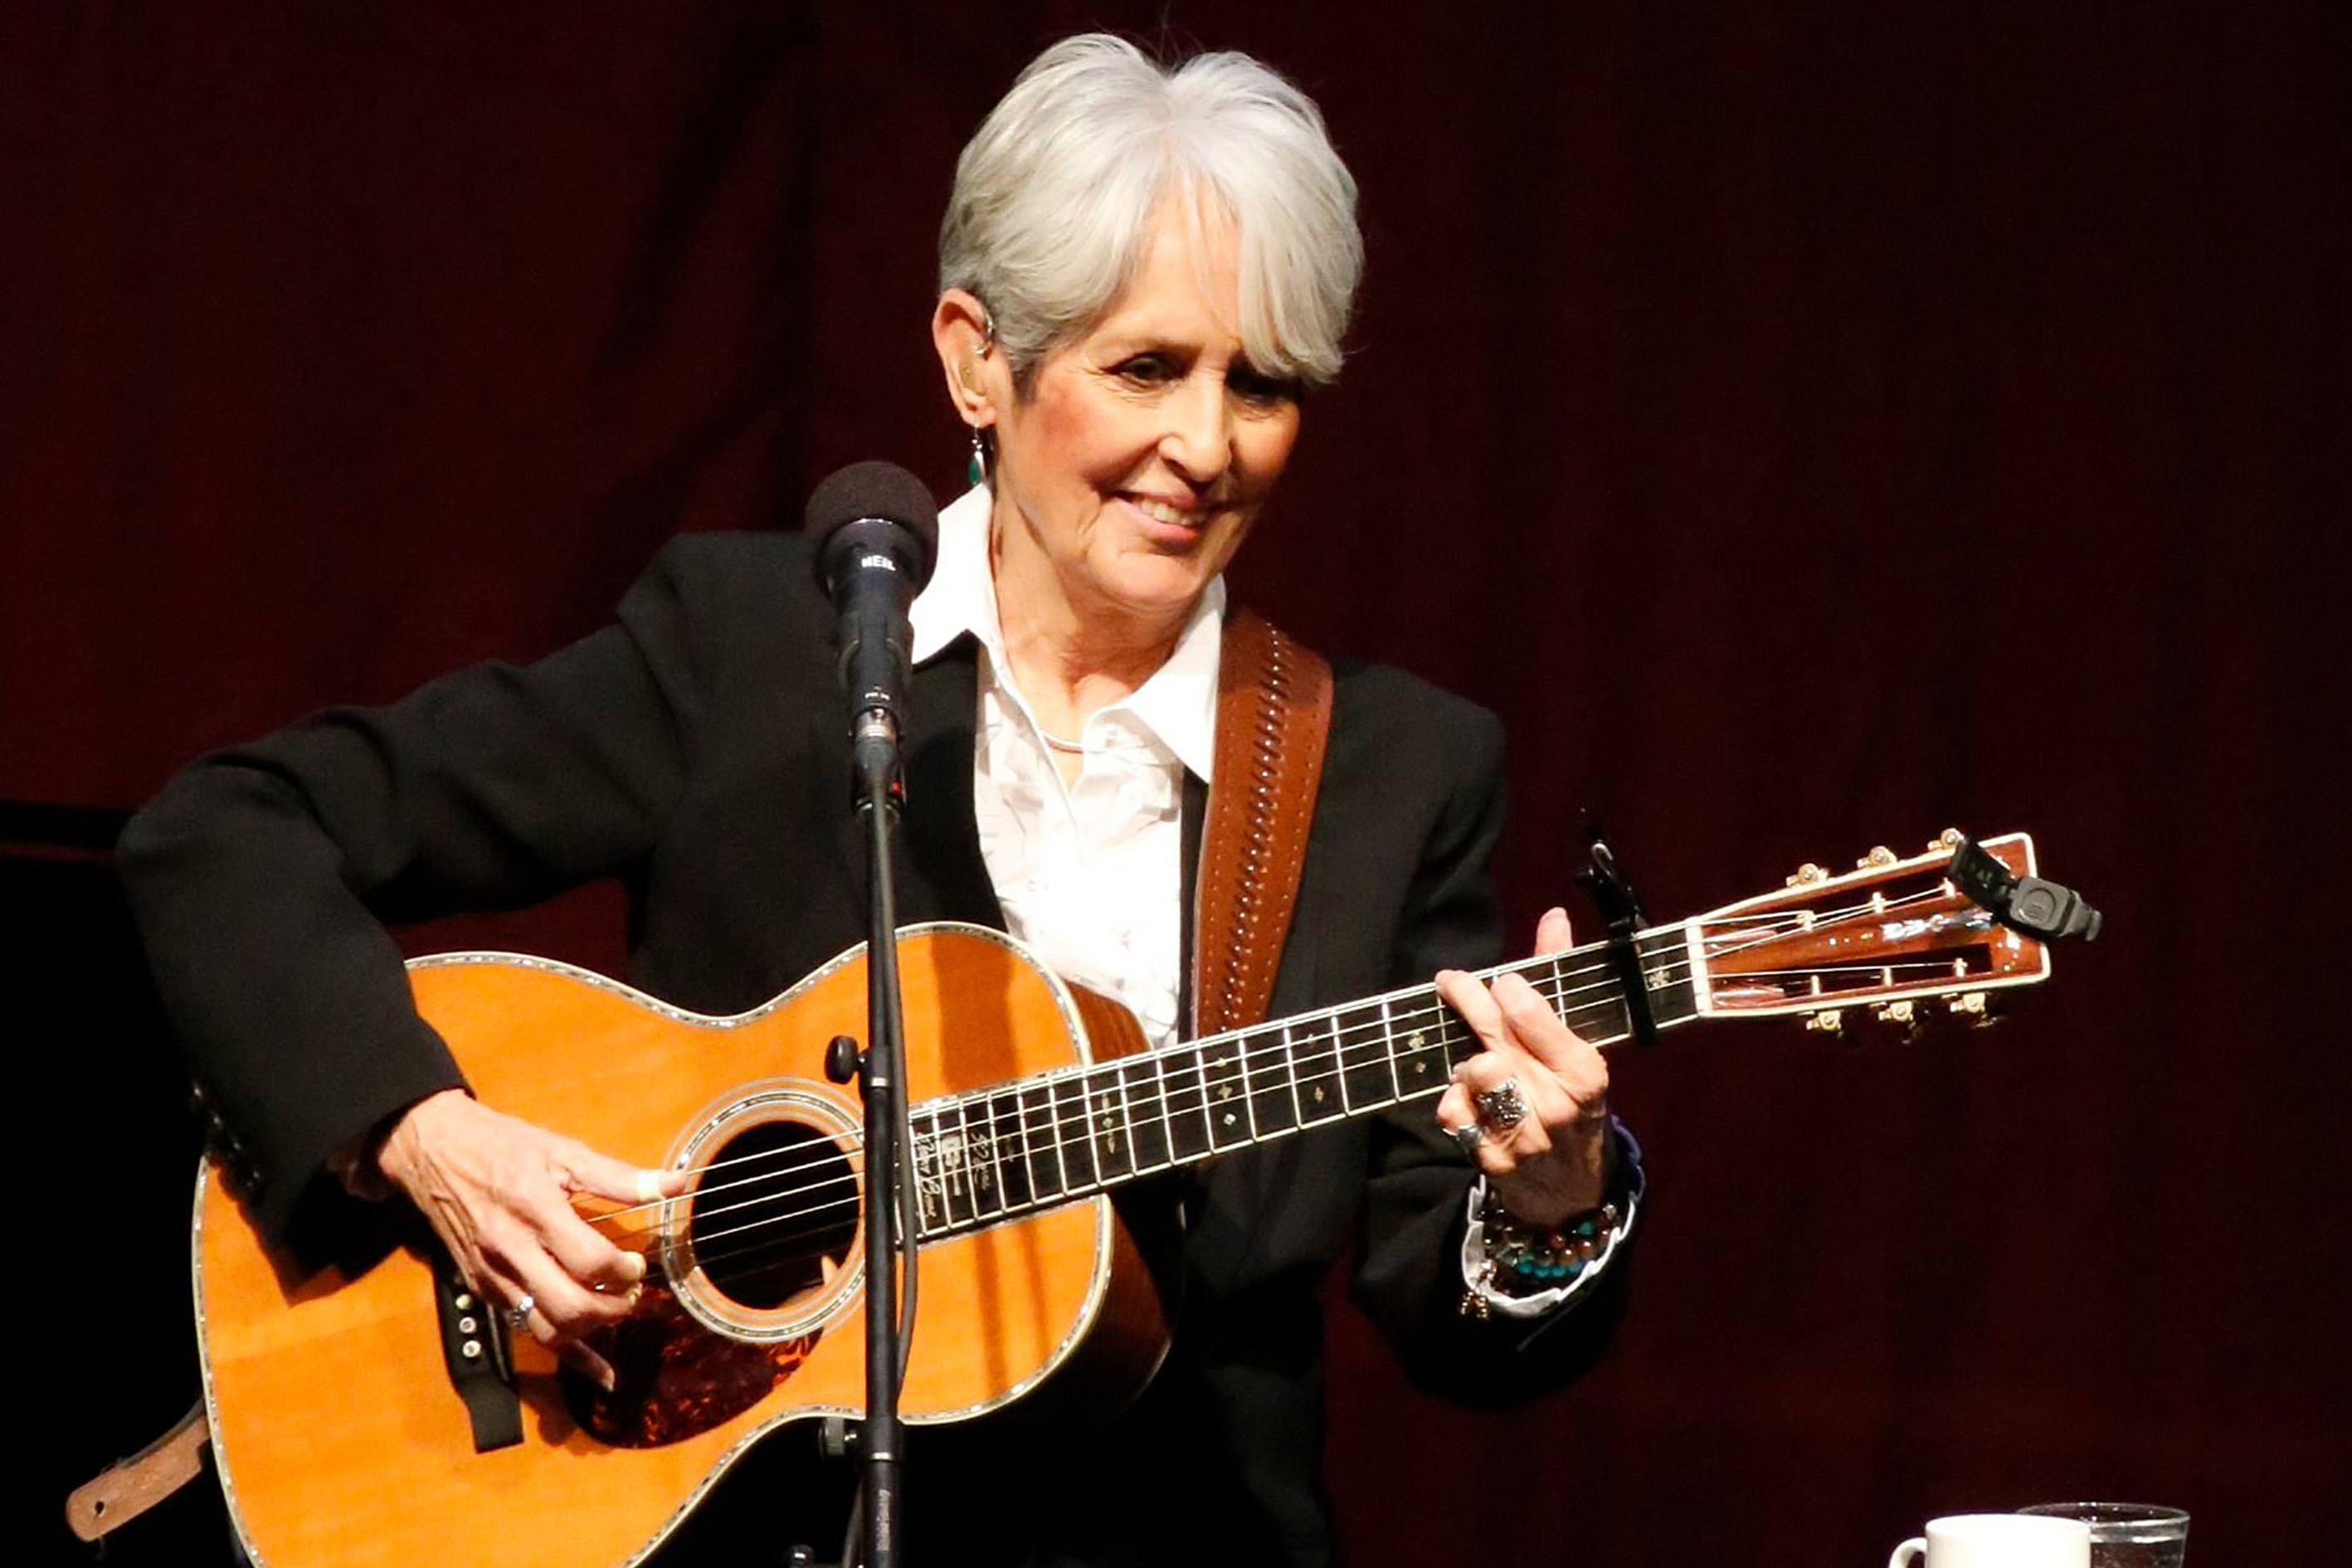 Joan Baez in concert, Stockholm, Sweden - 02 Mar 2018